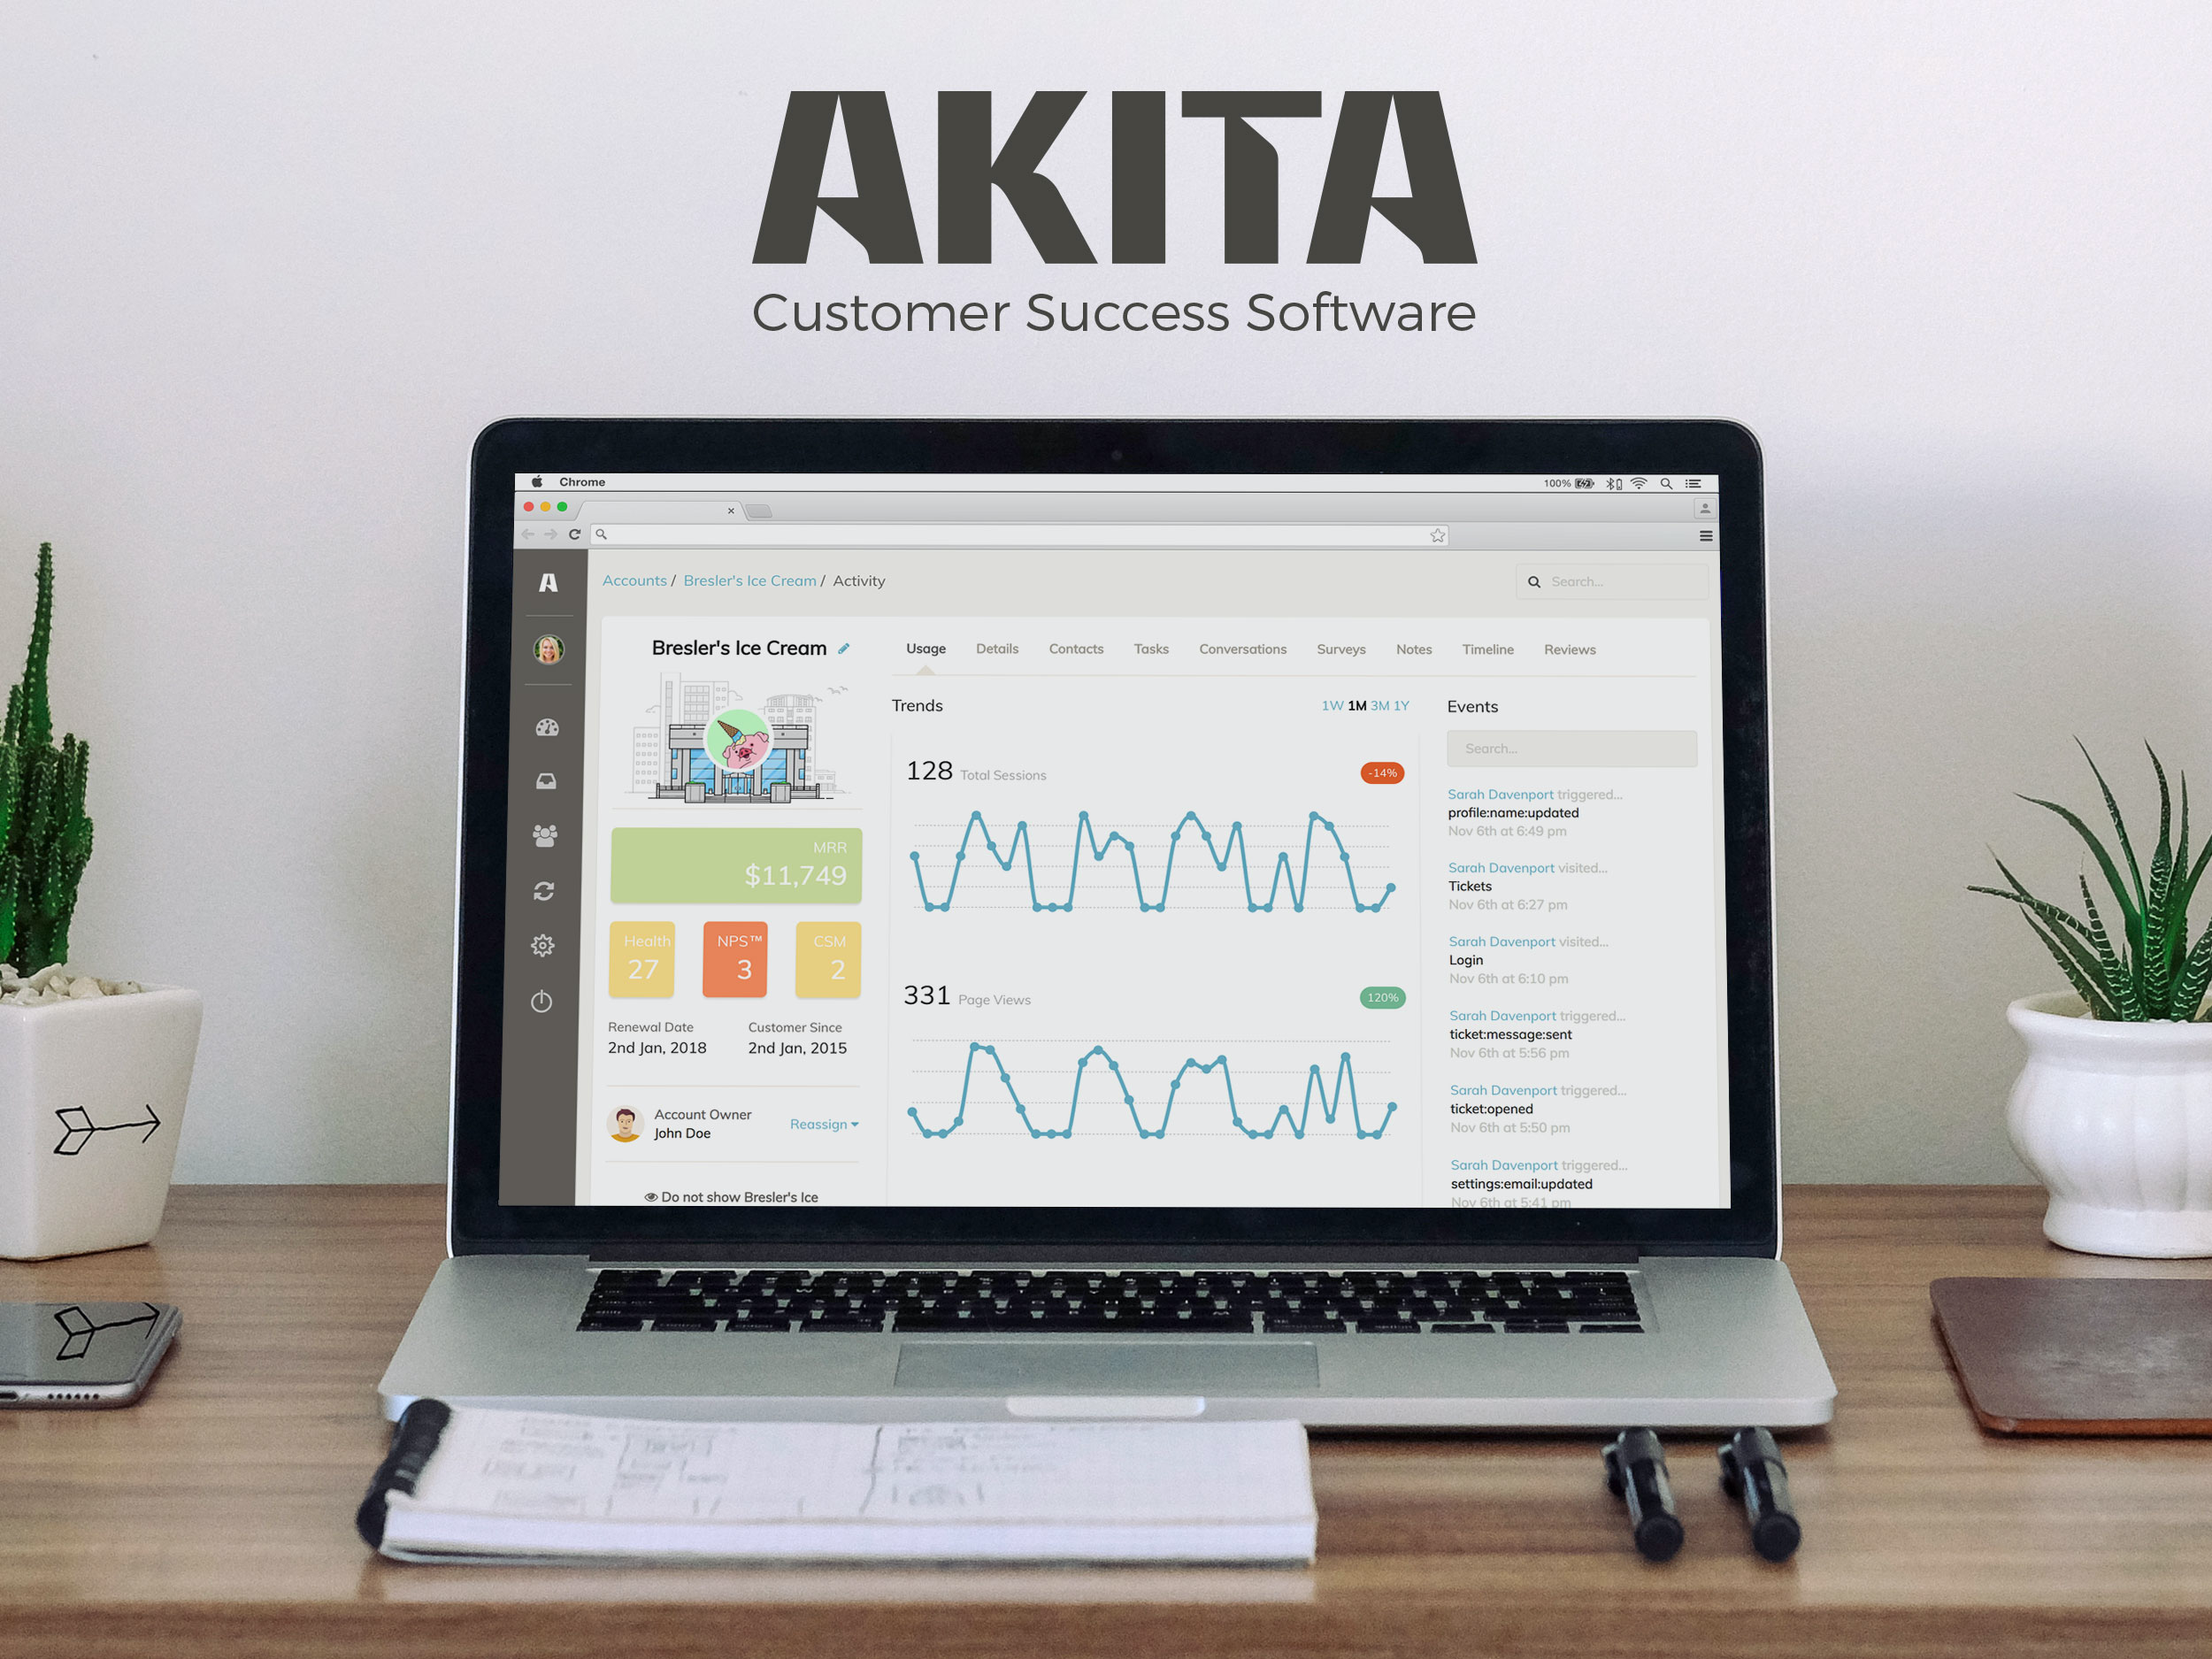 Akita is a full-featured Customer Success Management platform designed to help you nurture, retain and grow your customer base.